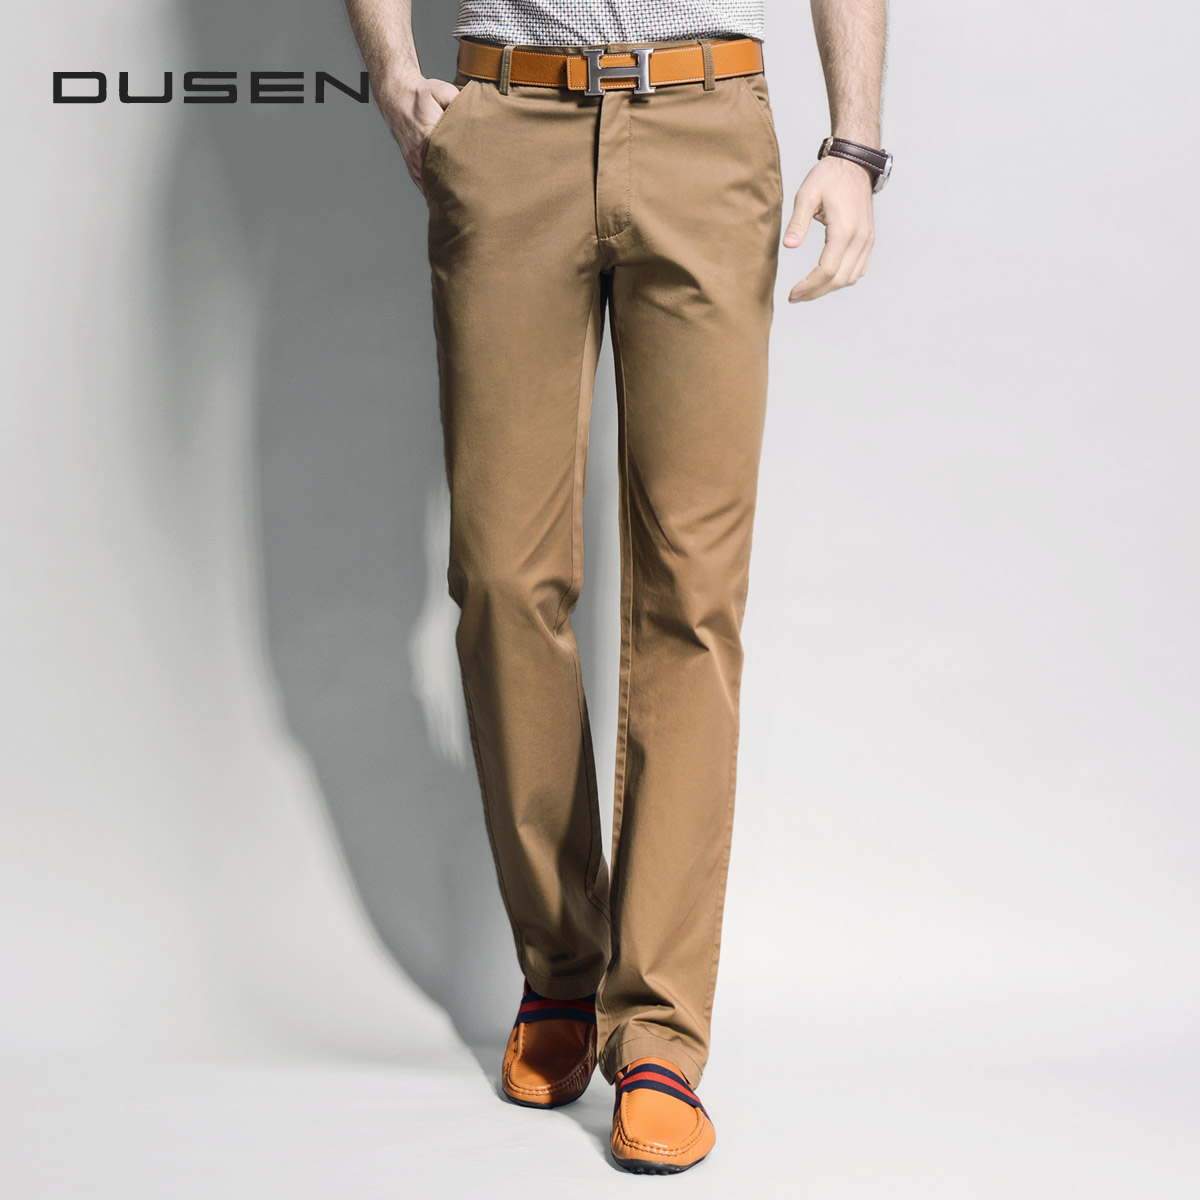 Men's clothing commercial straight casual pants male trousers slim all-match 100% cotton 4217 - Kyushu Trade Co. store